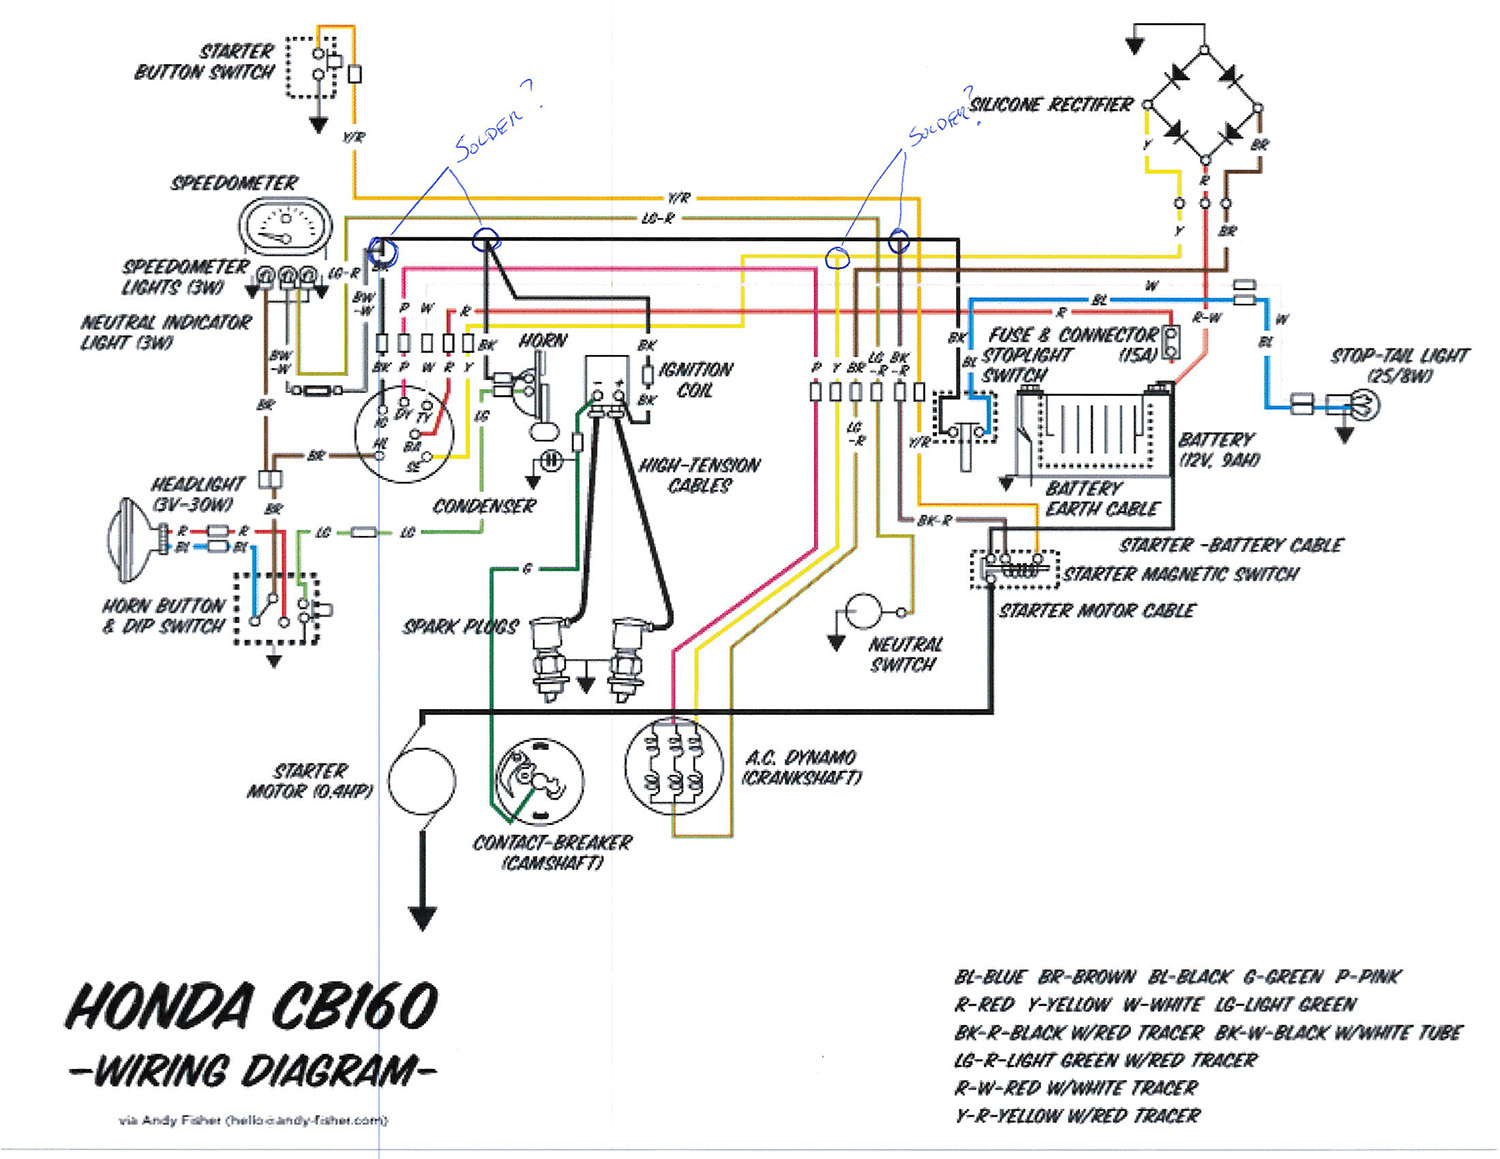 [DIAGRAM_5NL]  CB160 electrical woes.... | Honda Twins | Honda Cb160 Wiring |  | Honda Twins